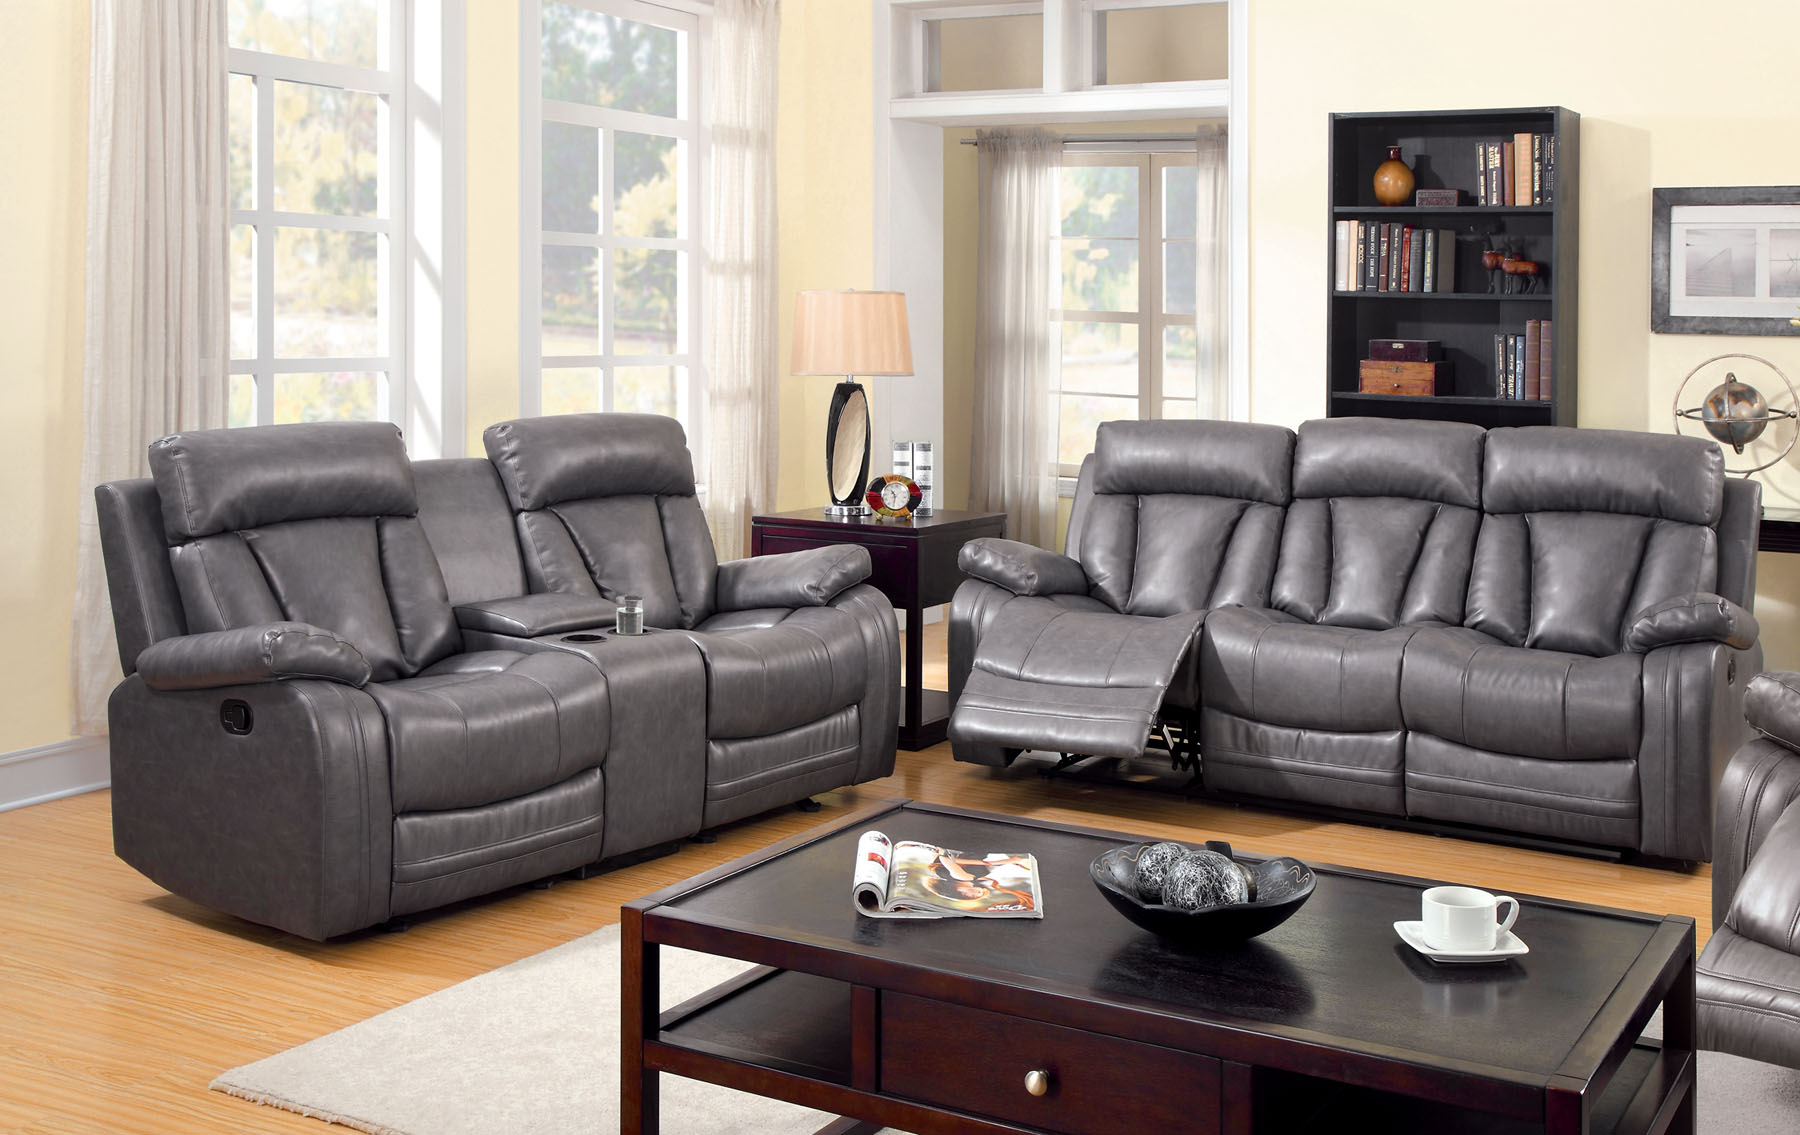 sofa mart dining tables decorating living room with sectional guilford motion collection | las vegas furniture store ...